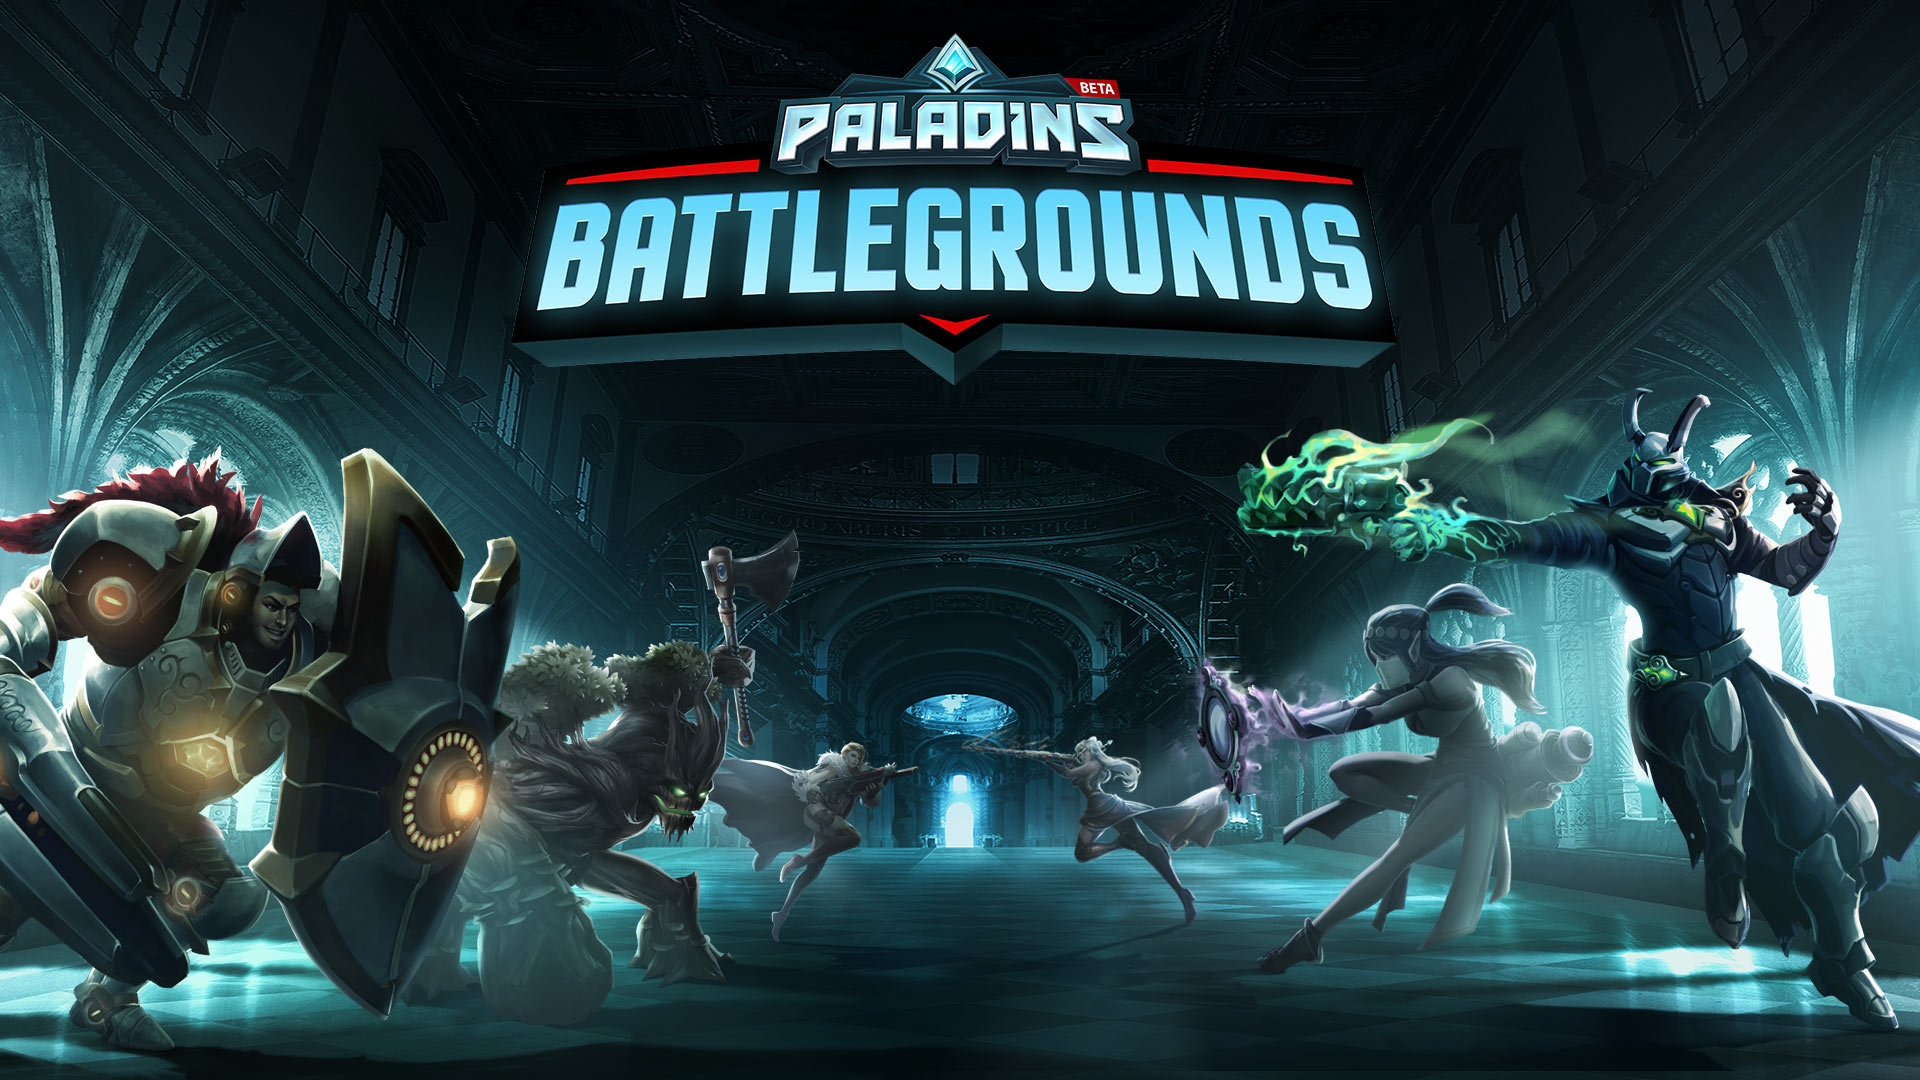 PALADIN BATTLEGROUND GRATUIT TÉLÉCHARGER